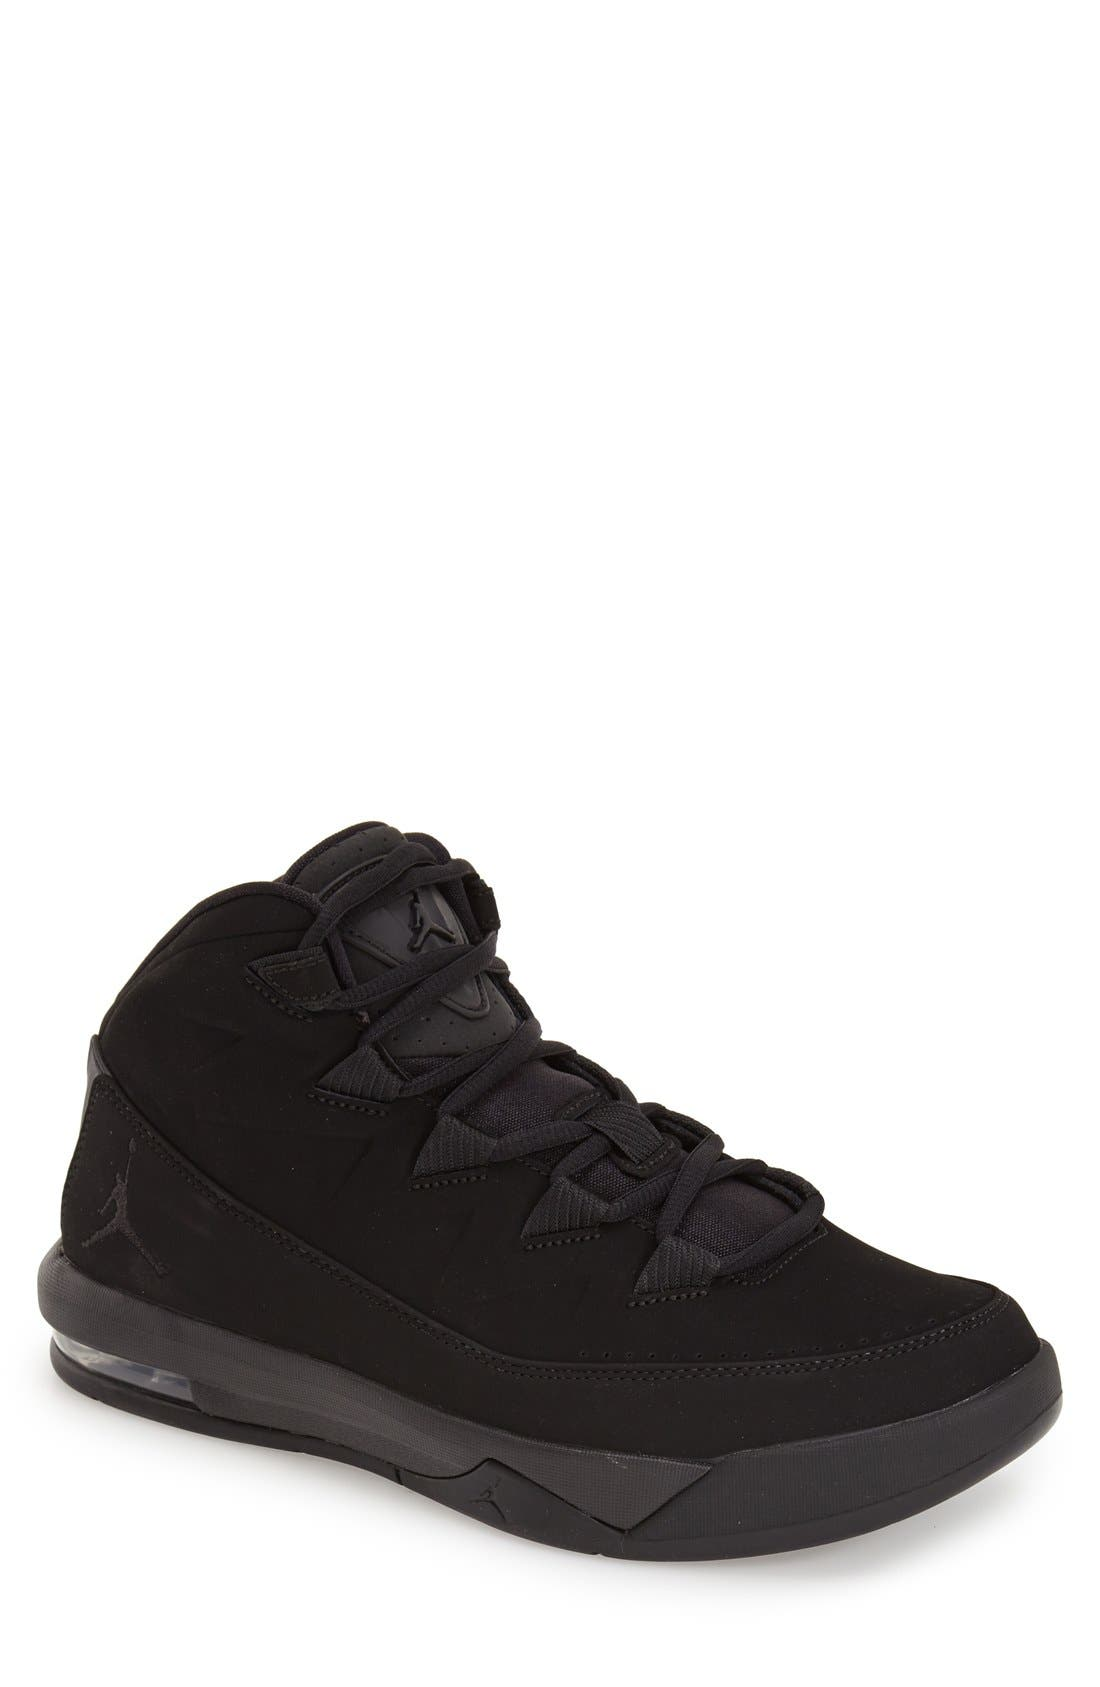 'Jordan Air Deluxe' Sneaker, Main, color, 010